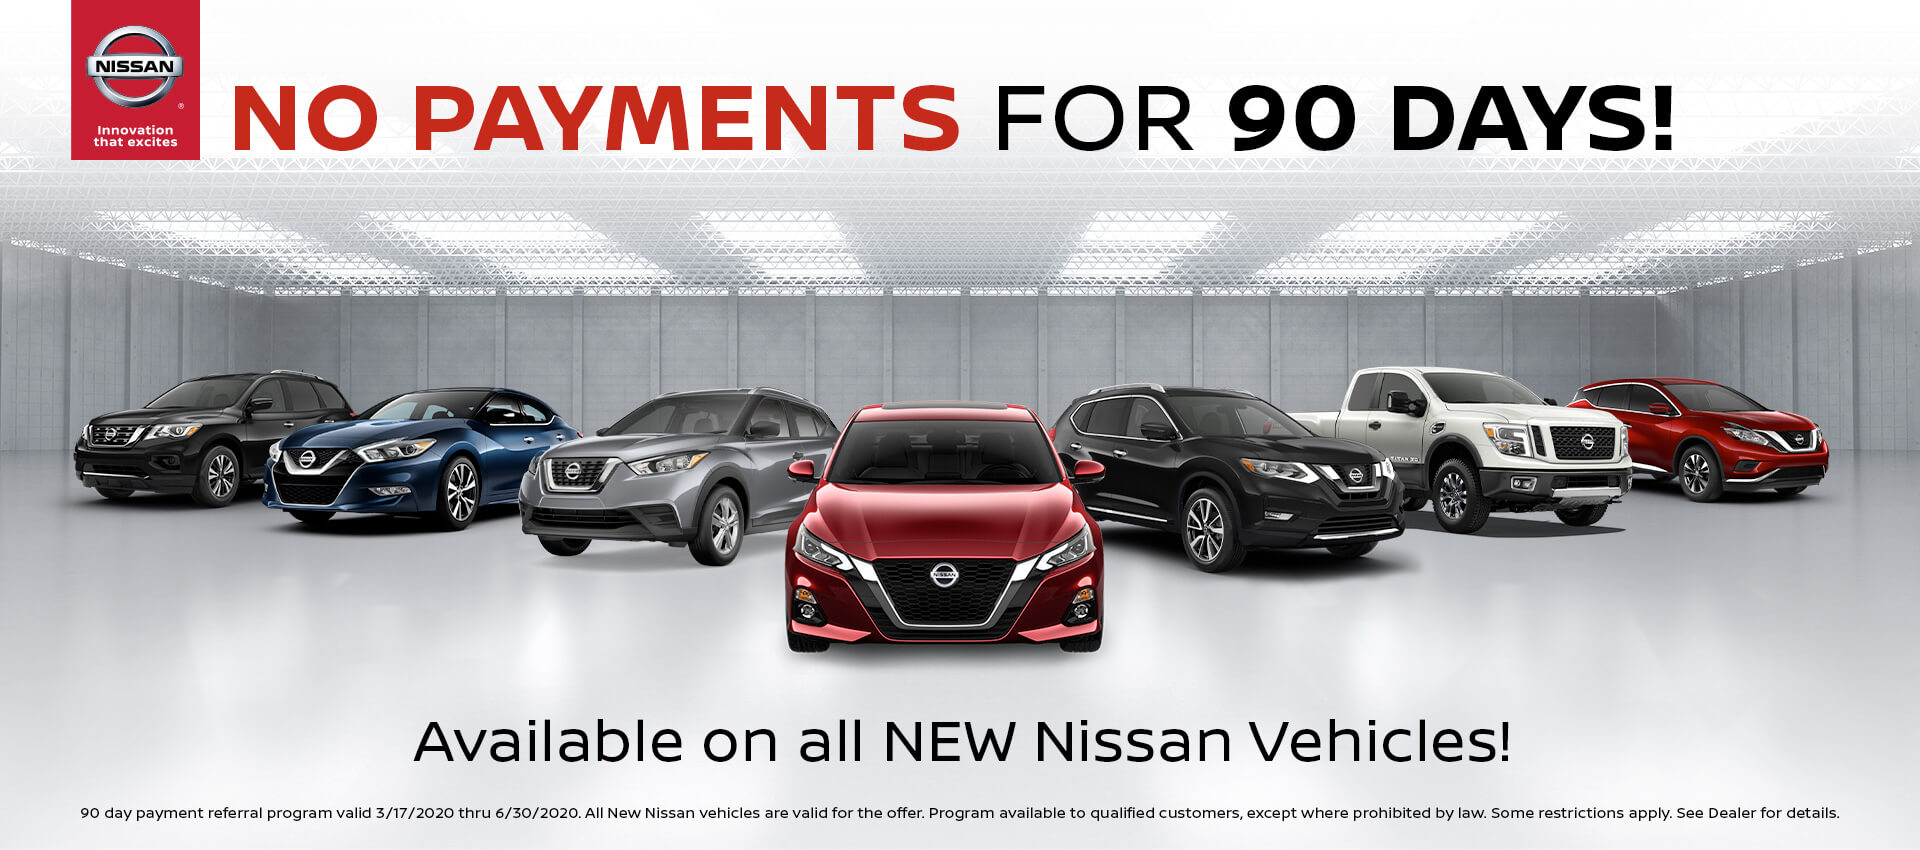 NO Payment for 90 days